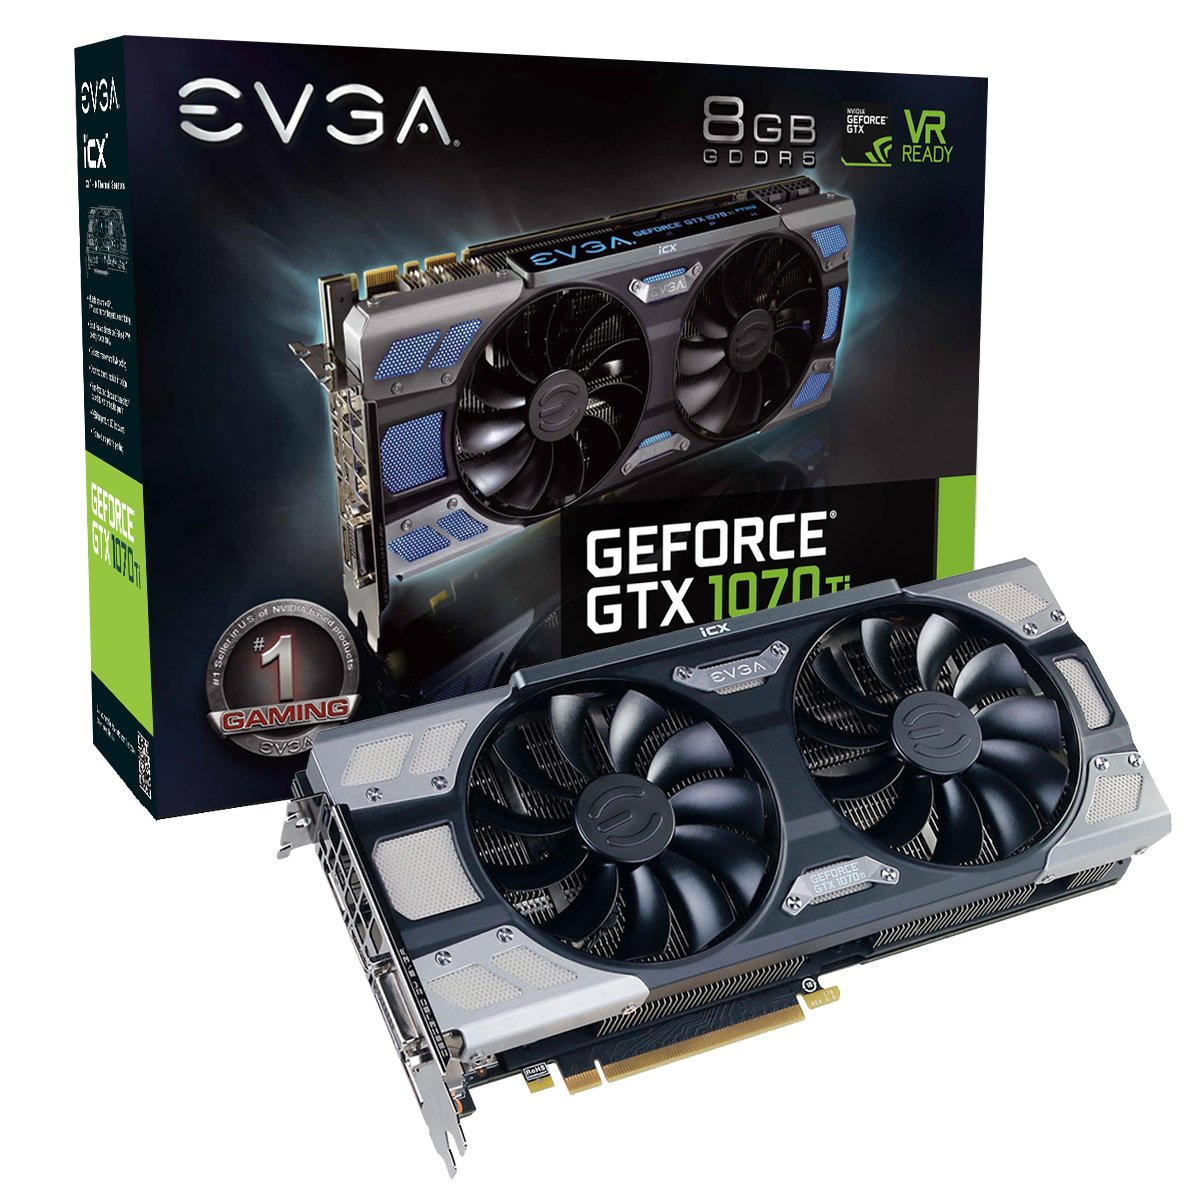 EVGA GeForce GTX 1070Ti FTW2